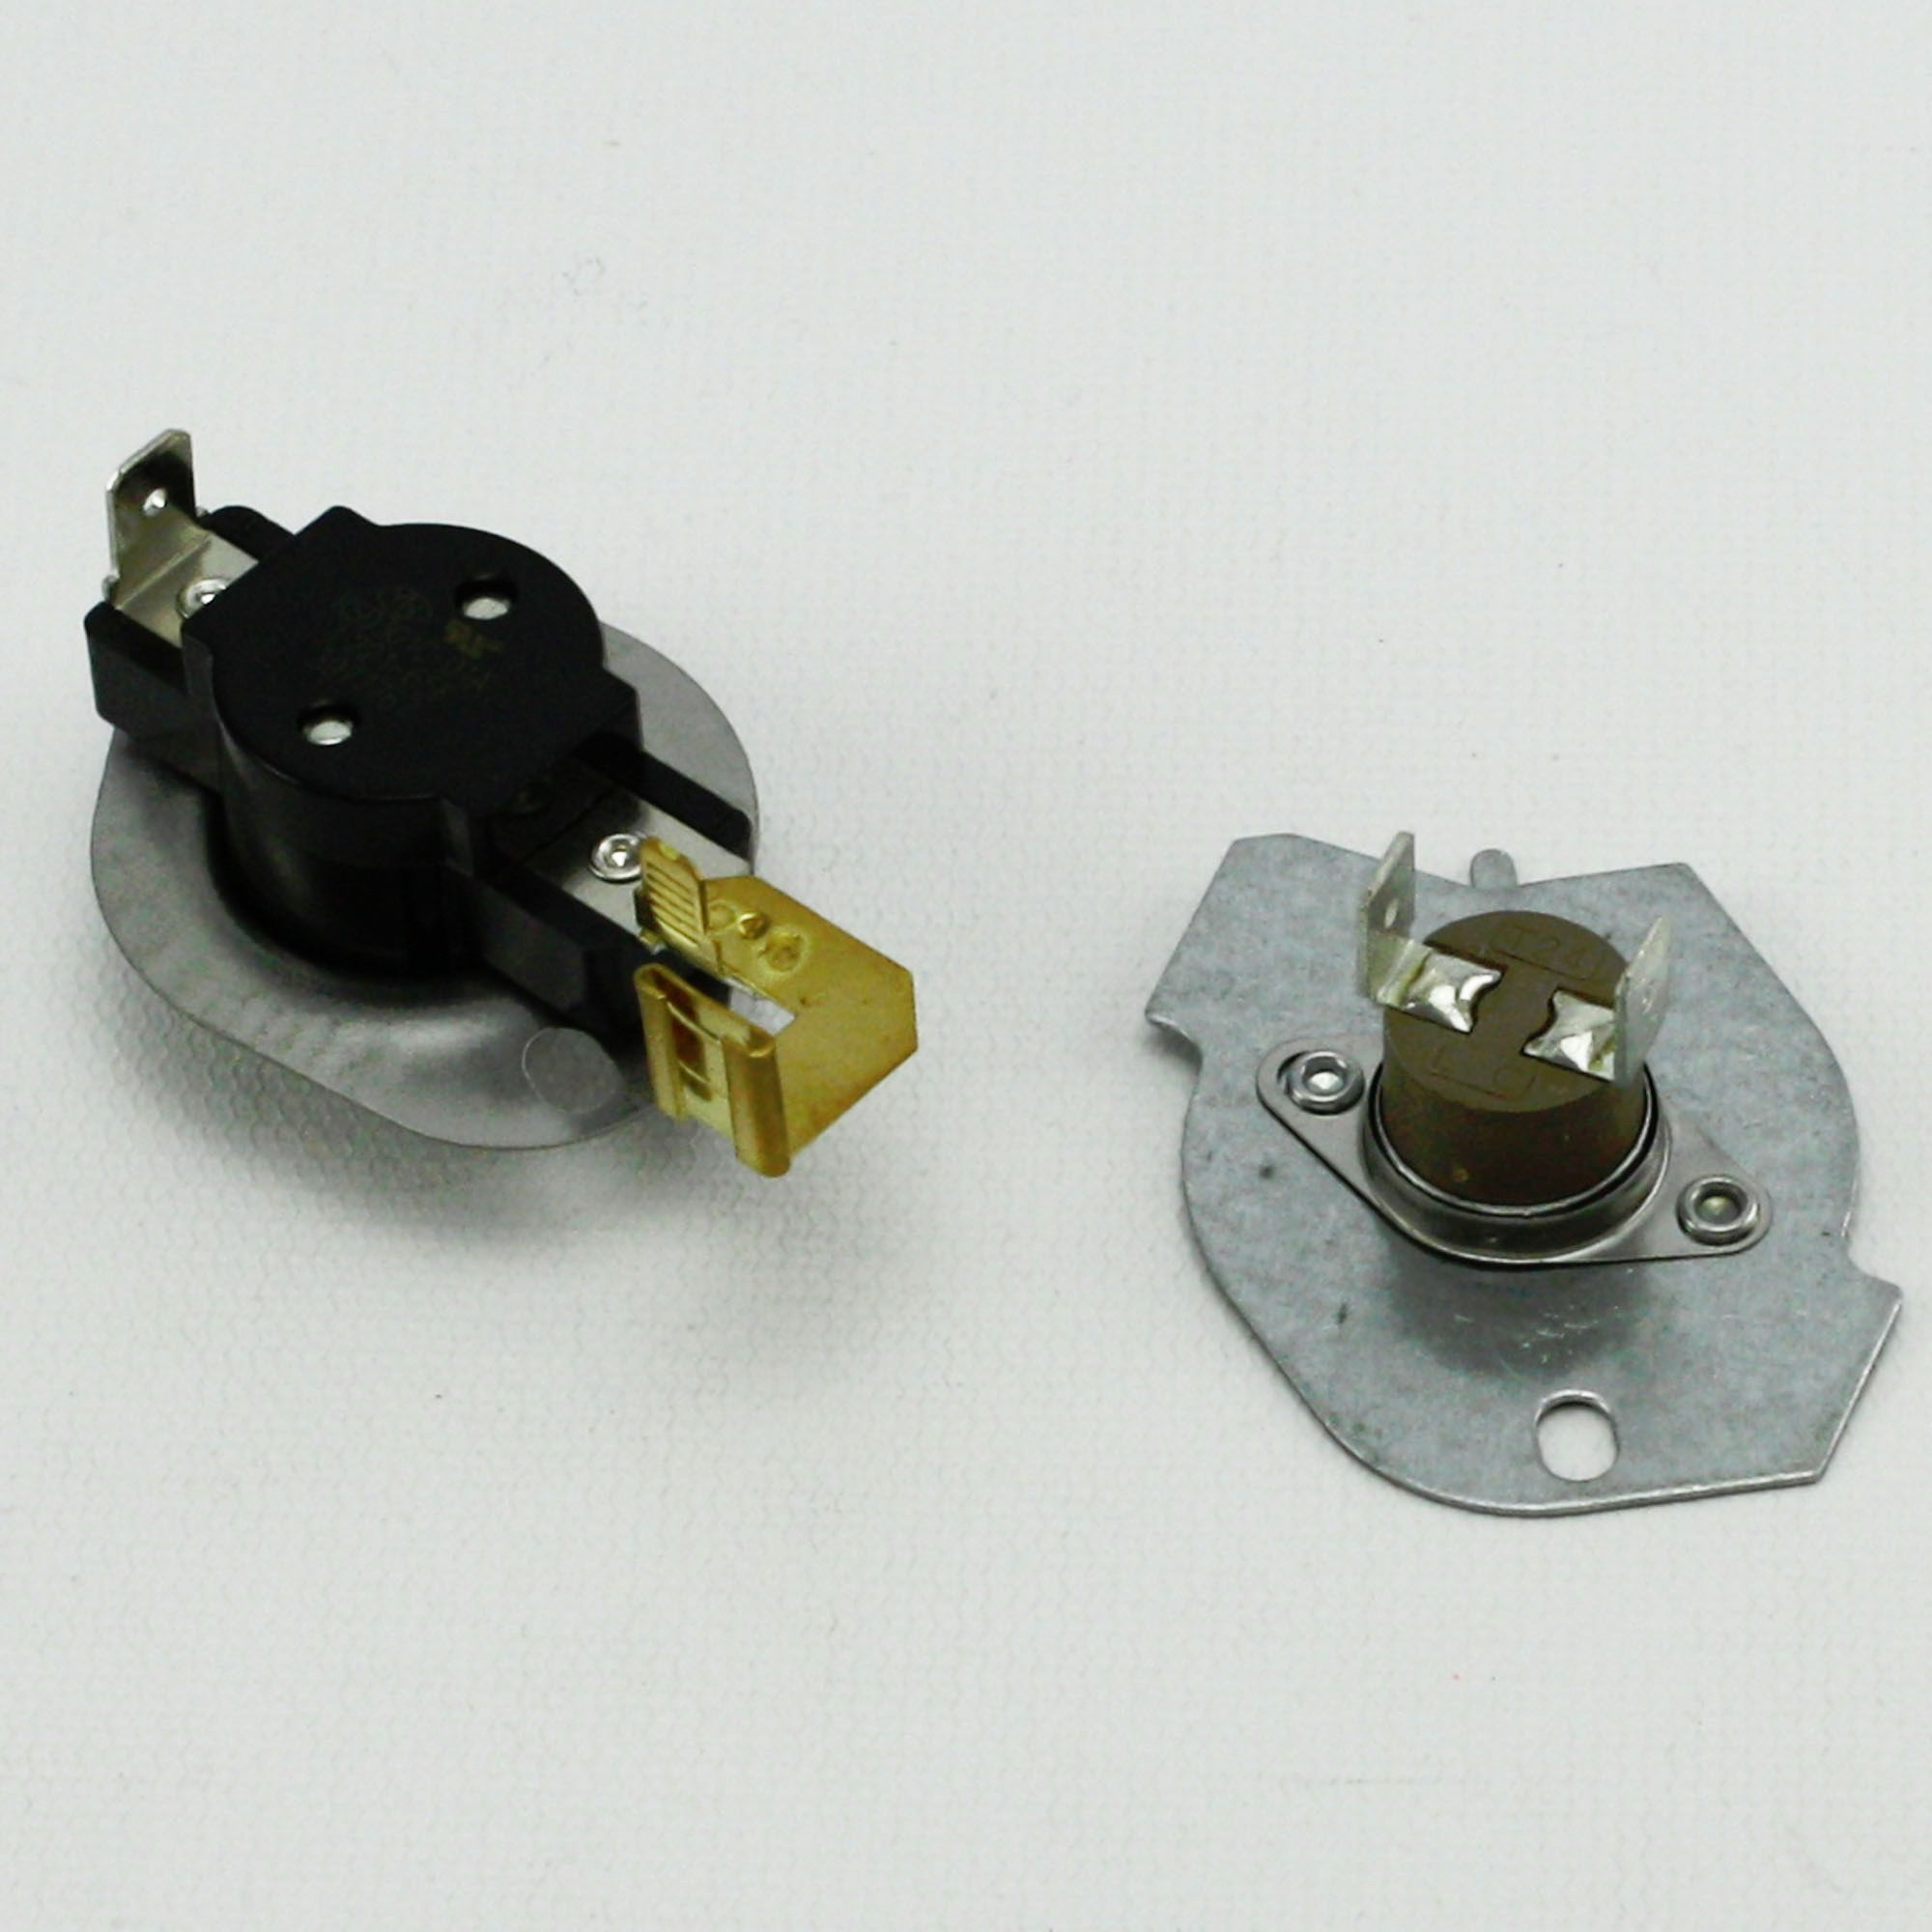 Replacement Dryer Thermostat And Thermal Fuse Kit Replaces Whirlpool 3977767